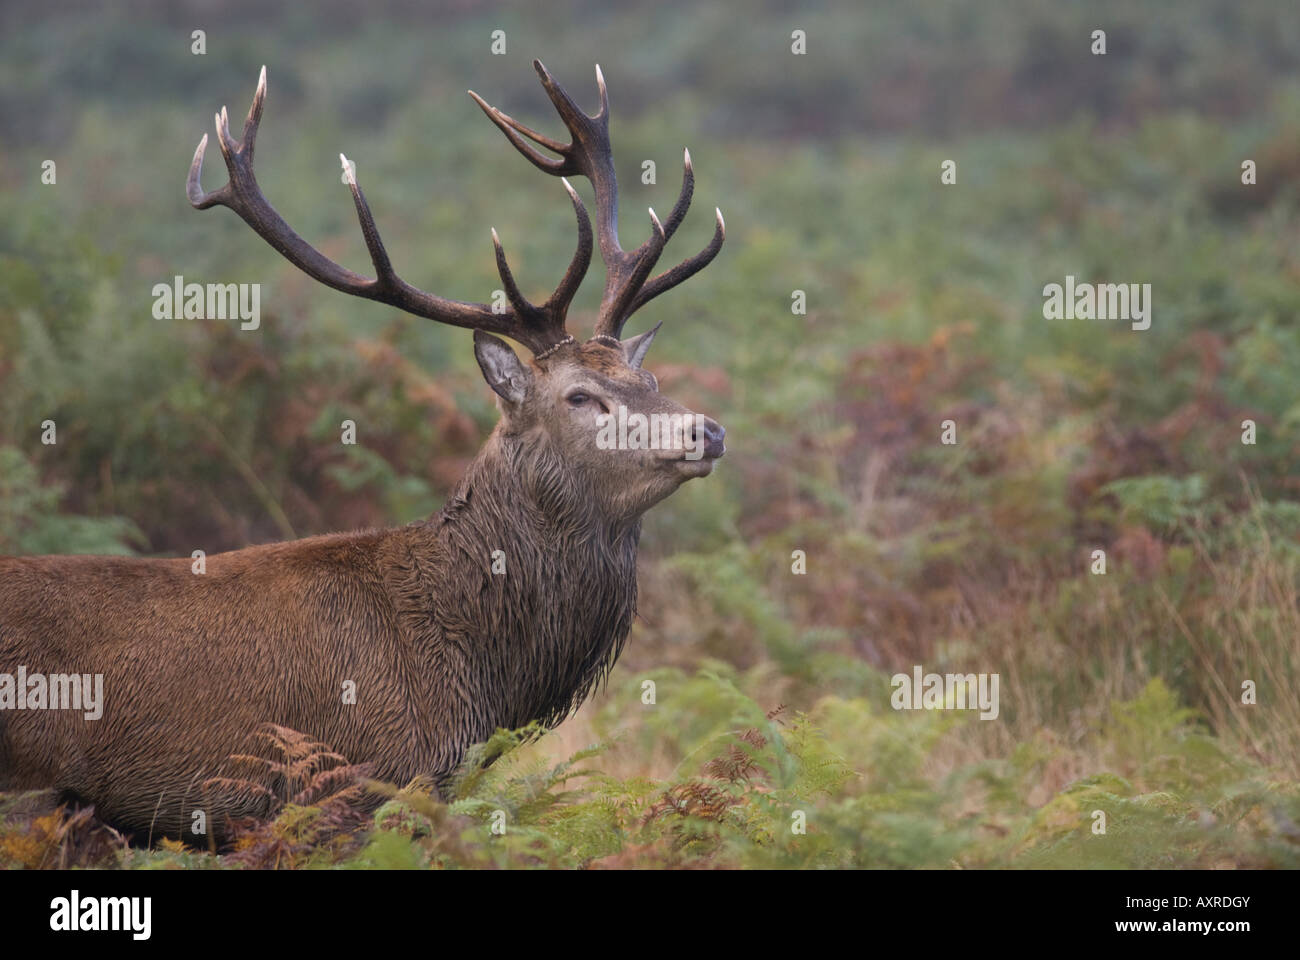 Red Deer Stag (Cervus elaphus) during rutting season - Stock Image